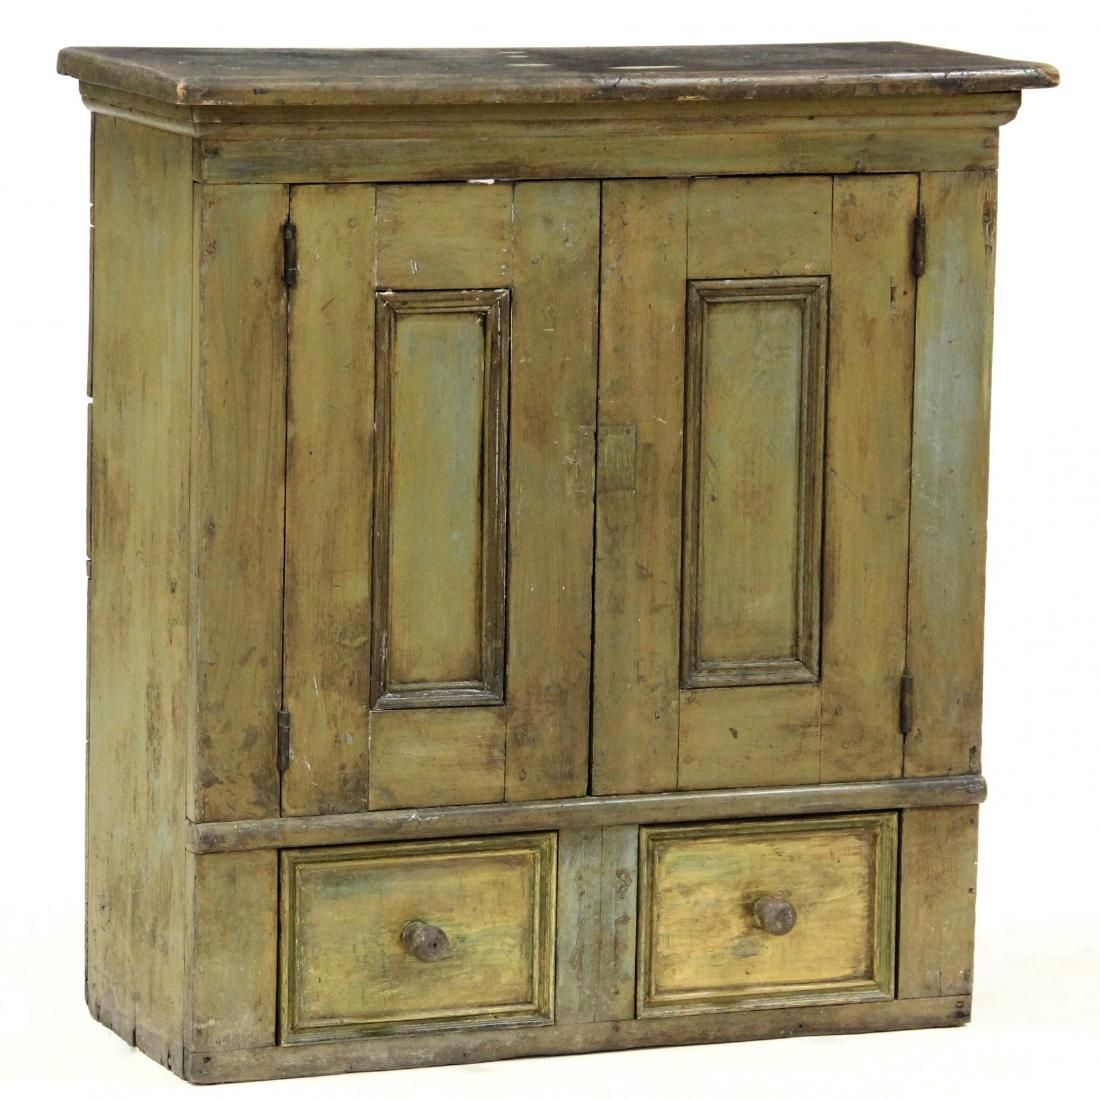 late 19th century, white pine, distressed green painted surface, hinged paneled doors with shelved interior, over two drawers.  34 x 32 x 13 in.  Collection of Carol Charny of New York and Chapel Hill.